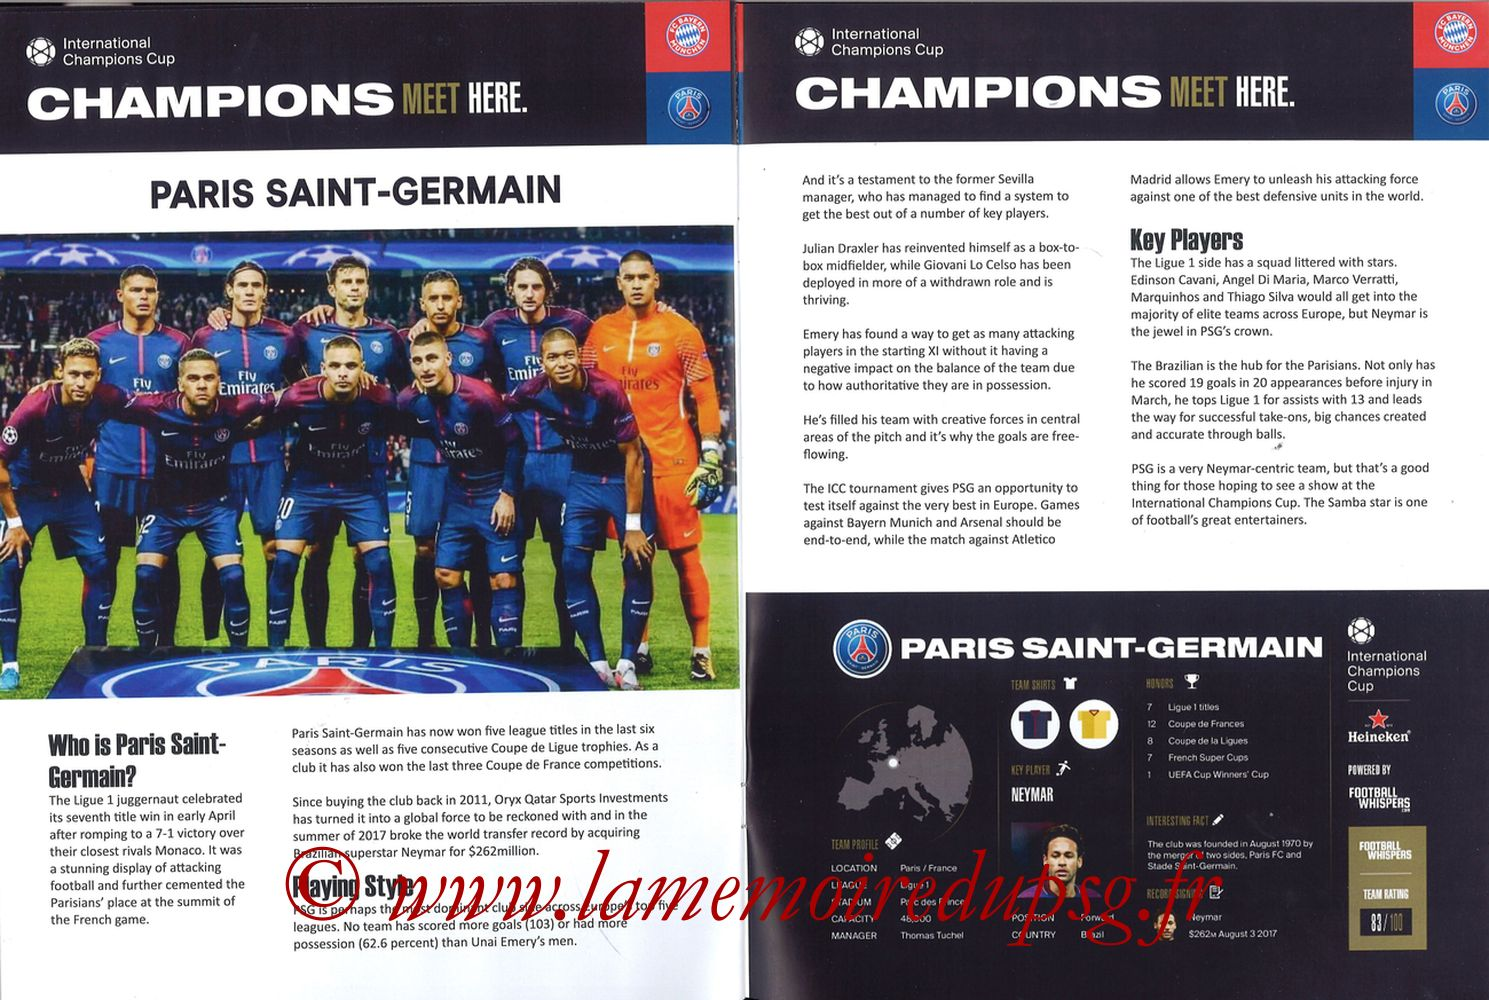 2018-07-21  Bayern Munich-PSG (International Champions Cup à Klagenfurt, Programme pirate) - Pages 06 et 07